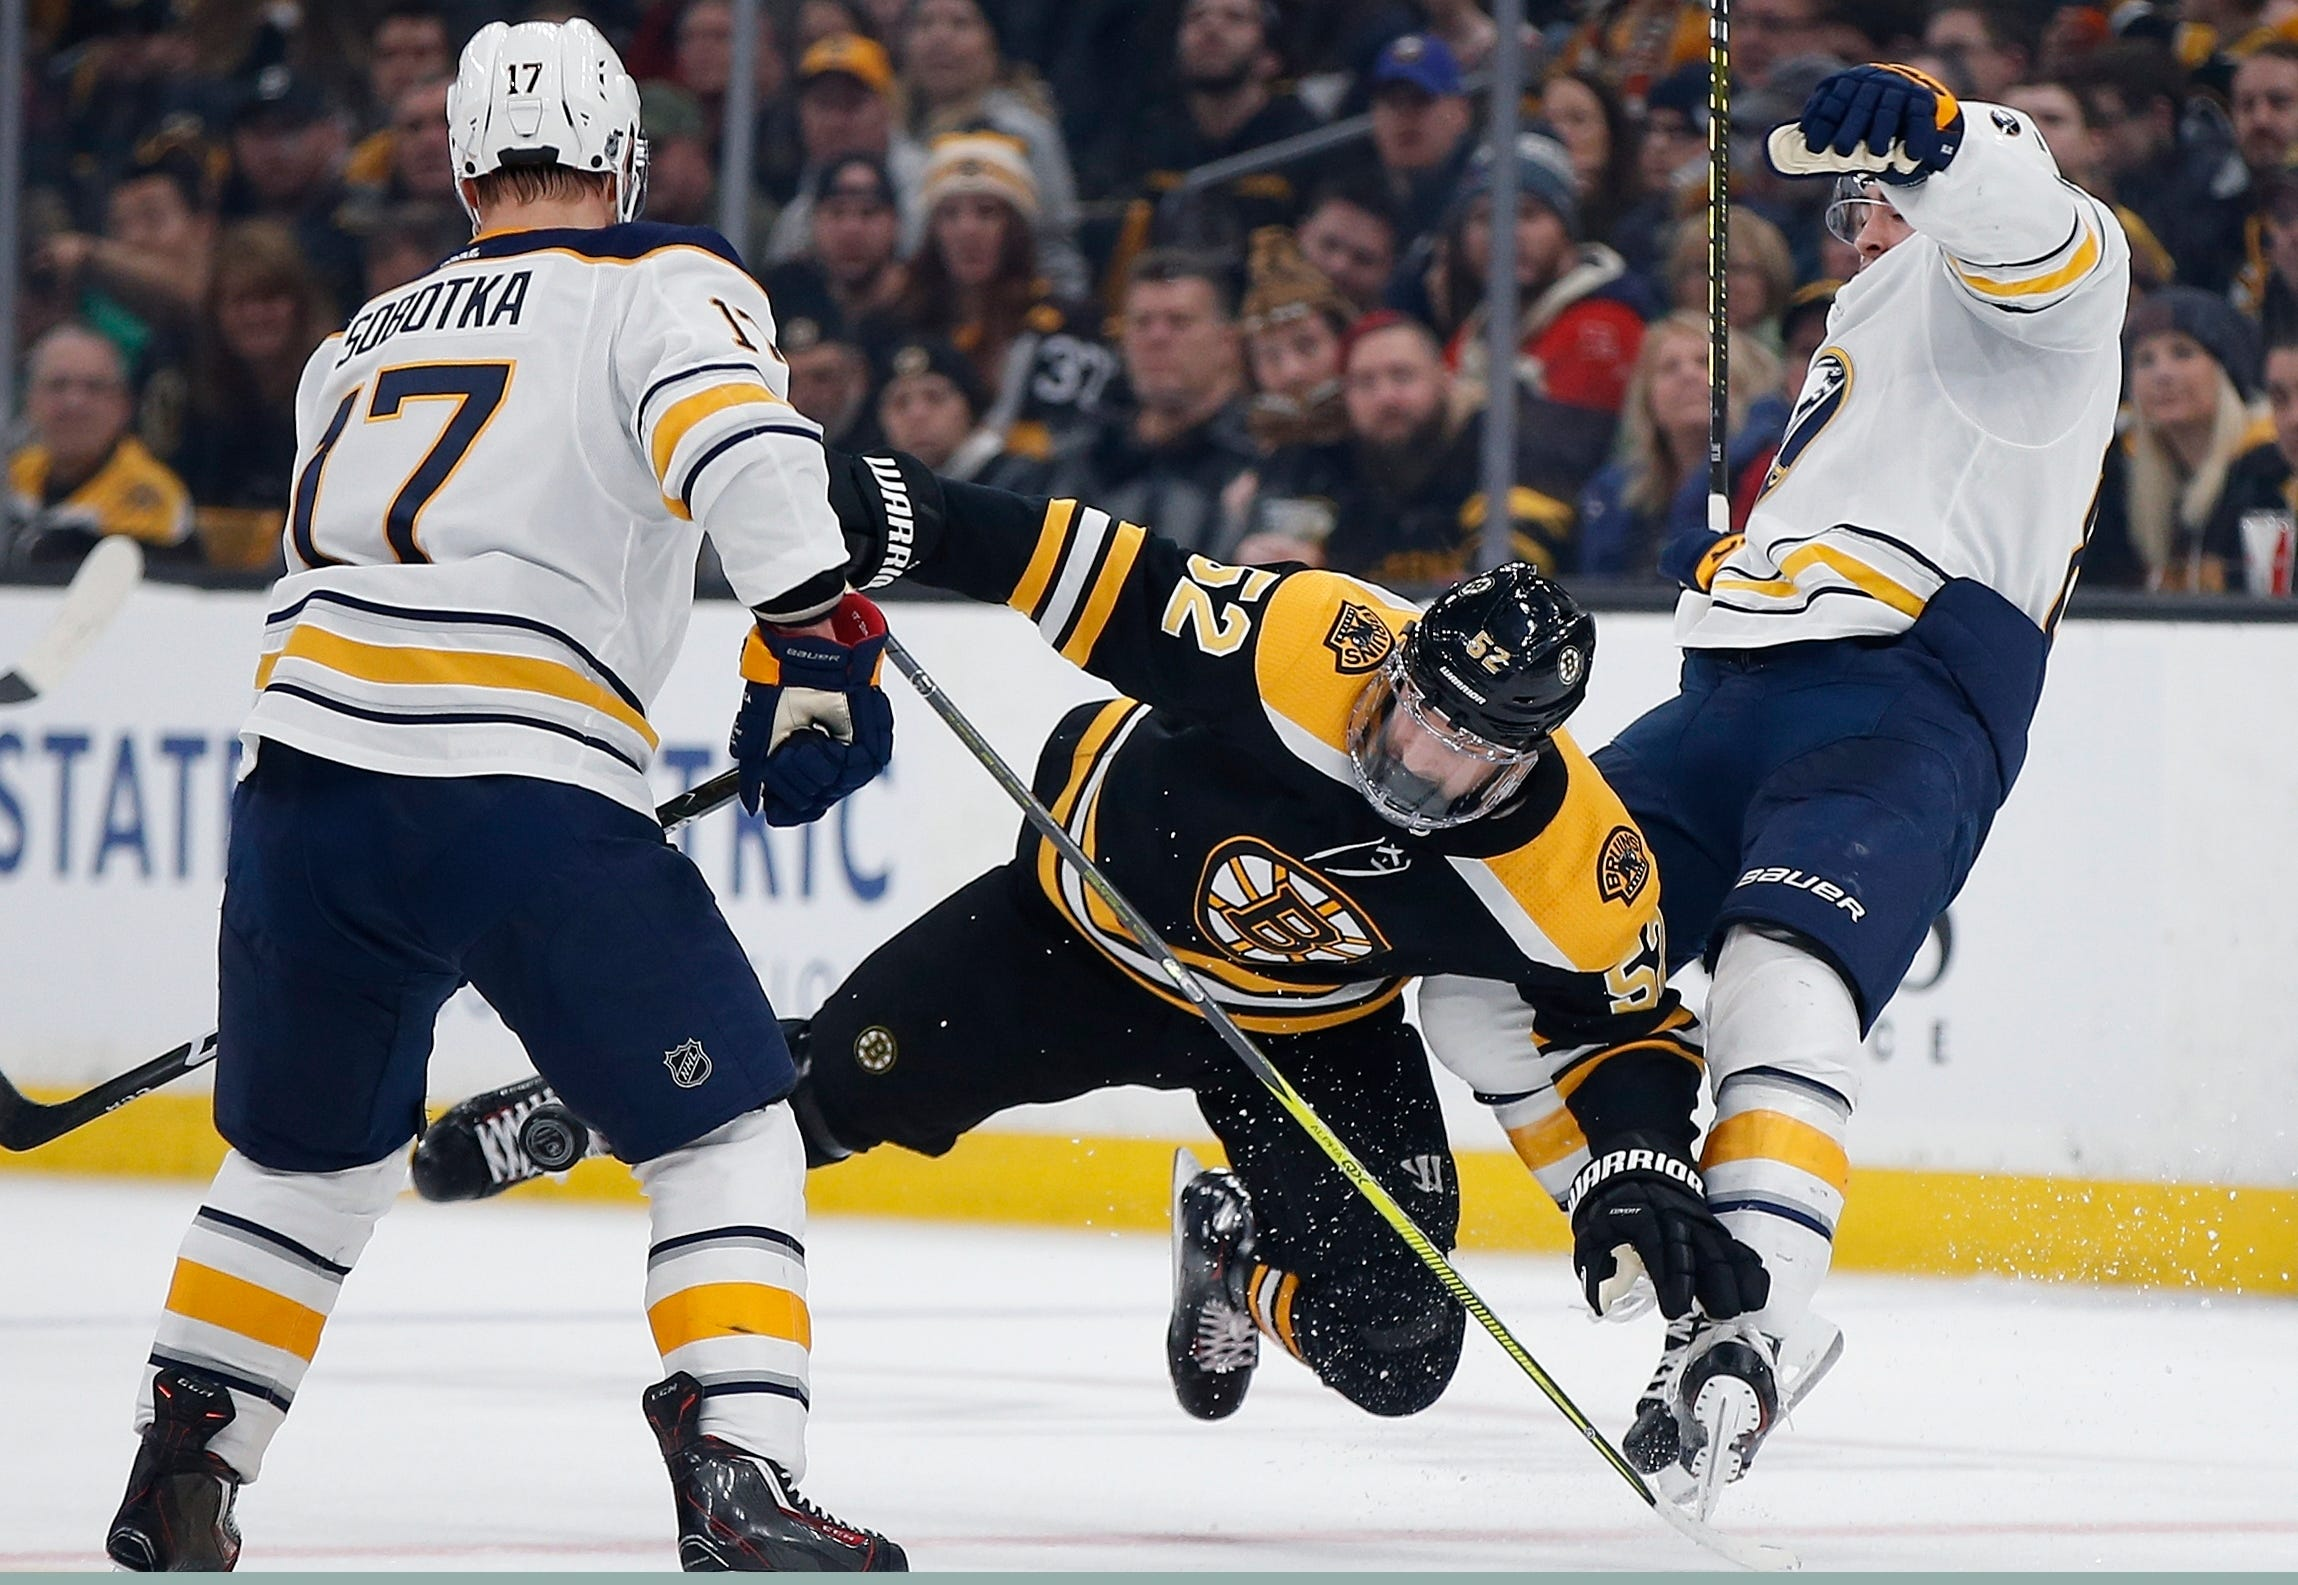 Wagner, Backes score in Bruins' 2-1 win over Sabres